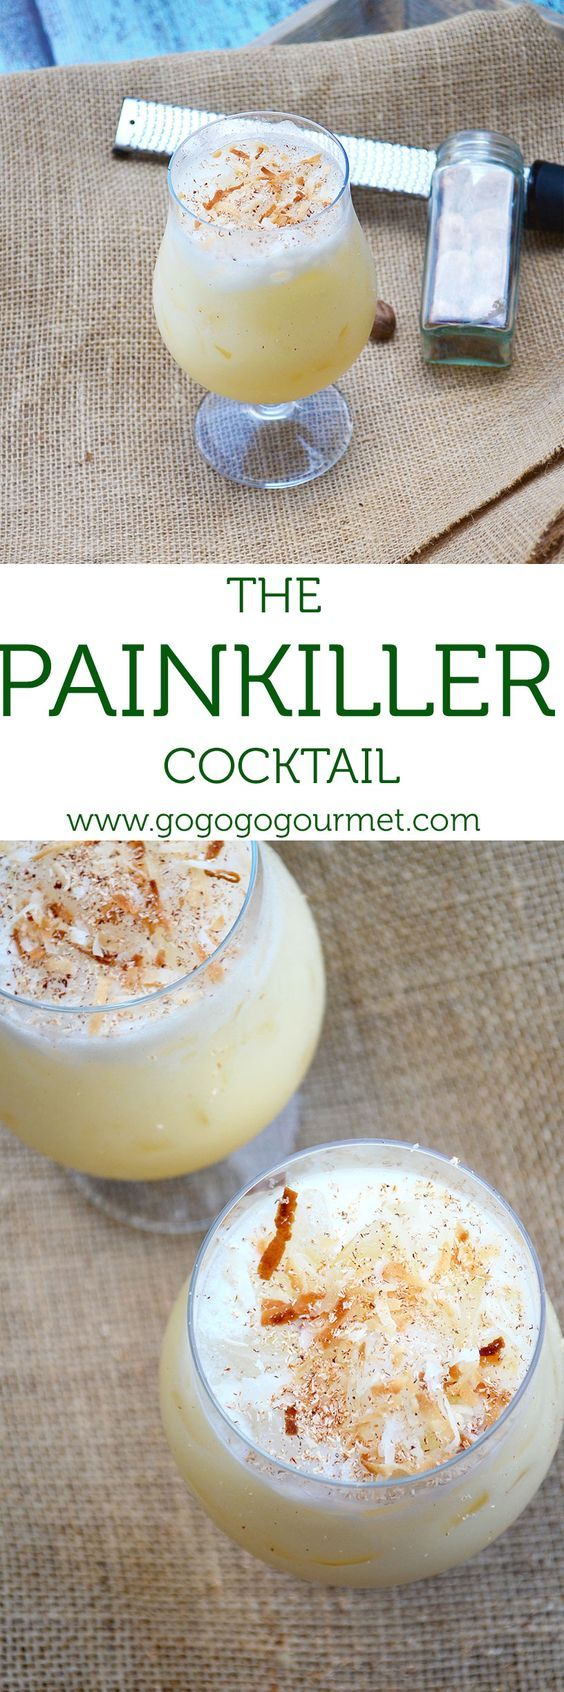 This Painkiller Cocktail is totally out of this world- rum, coconut, orange and pineapple form a little taste of the tropics. | Go Go Go Gourmet @gogogogourmet